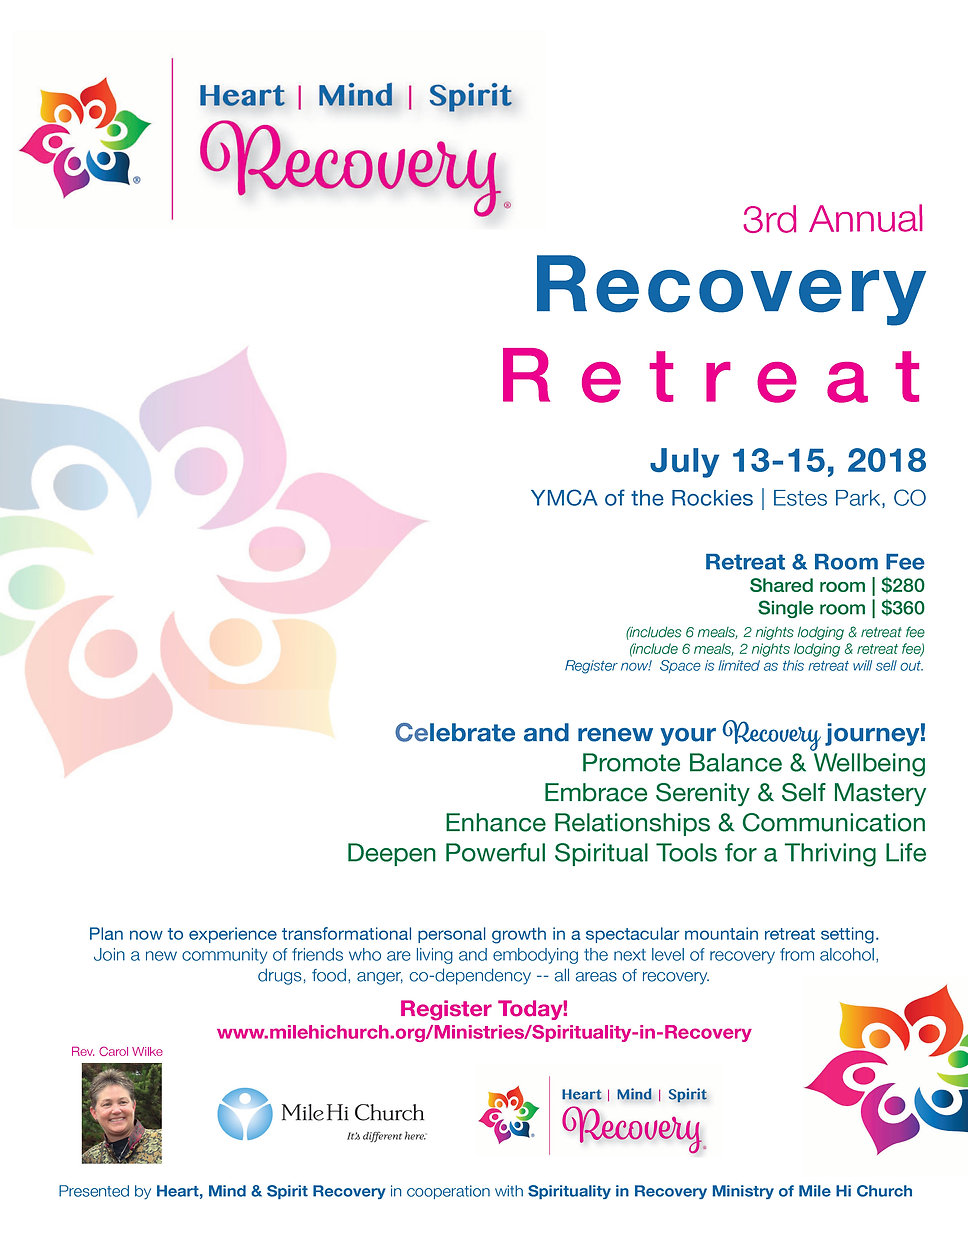 Recovery program with aa recovery spiritual tools conferences retreats for alcoholism, drug addiction and codependency